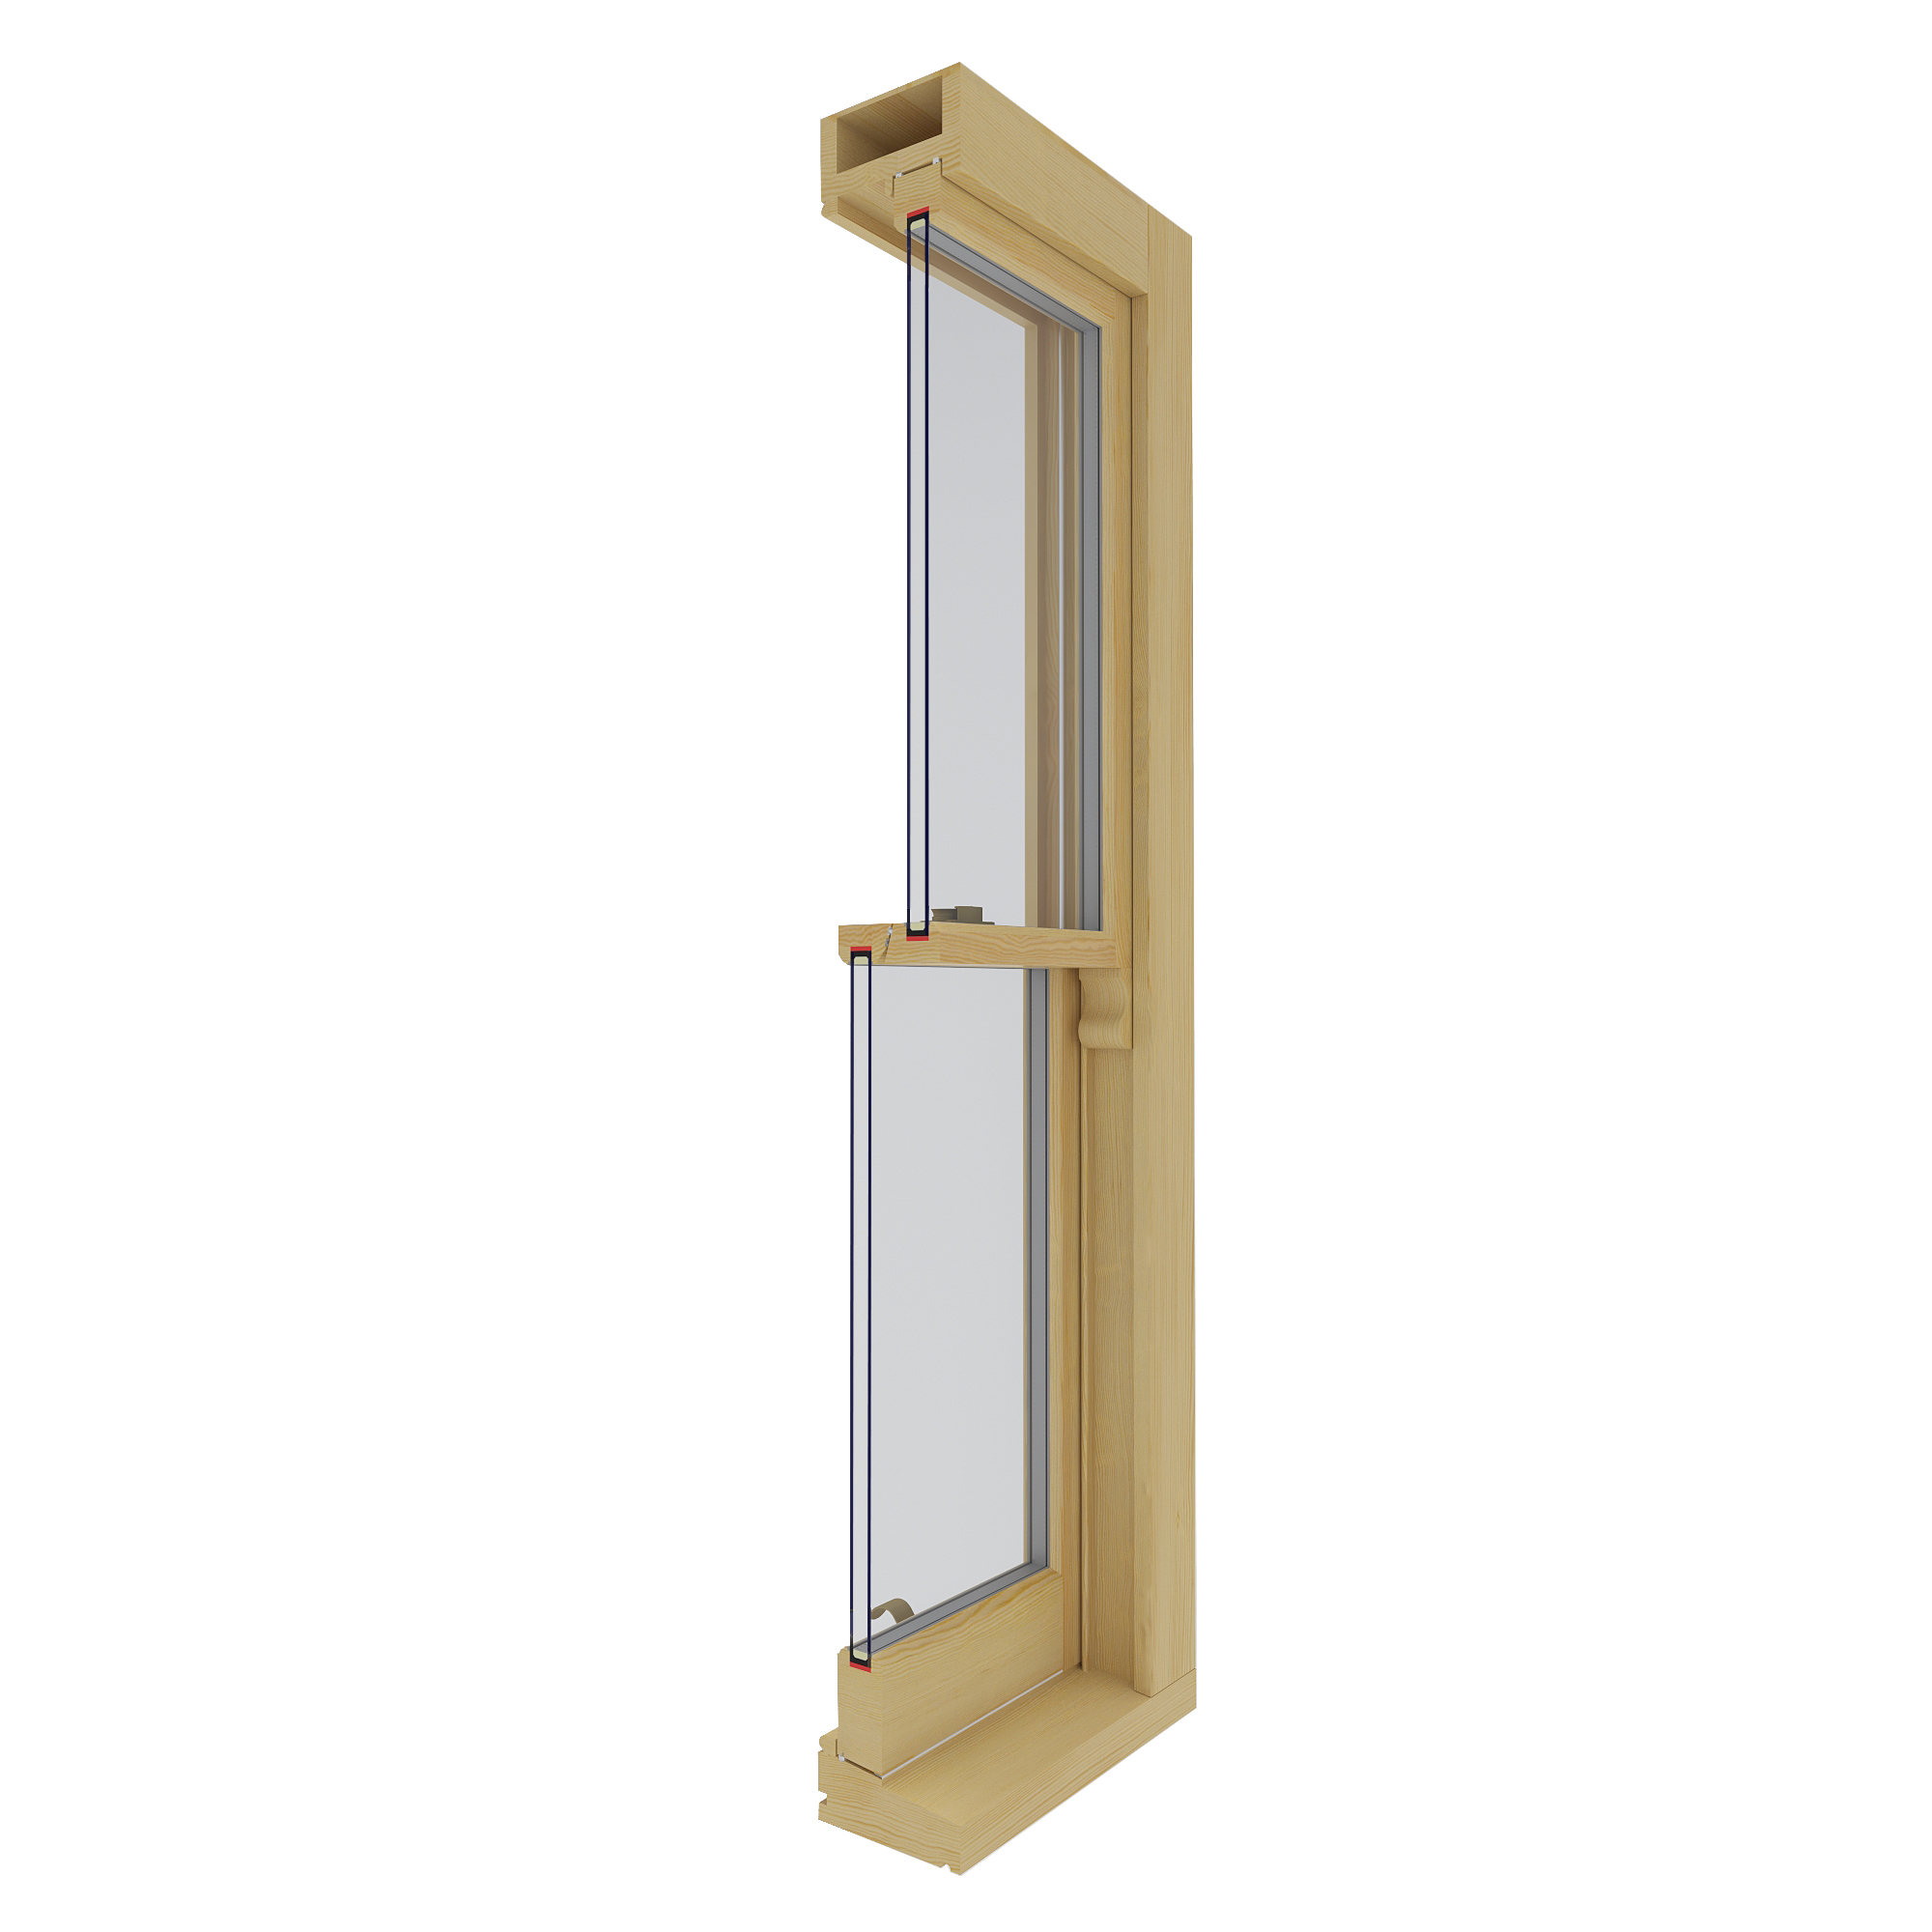 TIMBER SASH WINDOWS PRO NATURE